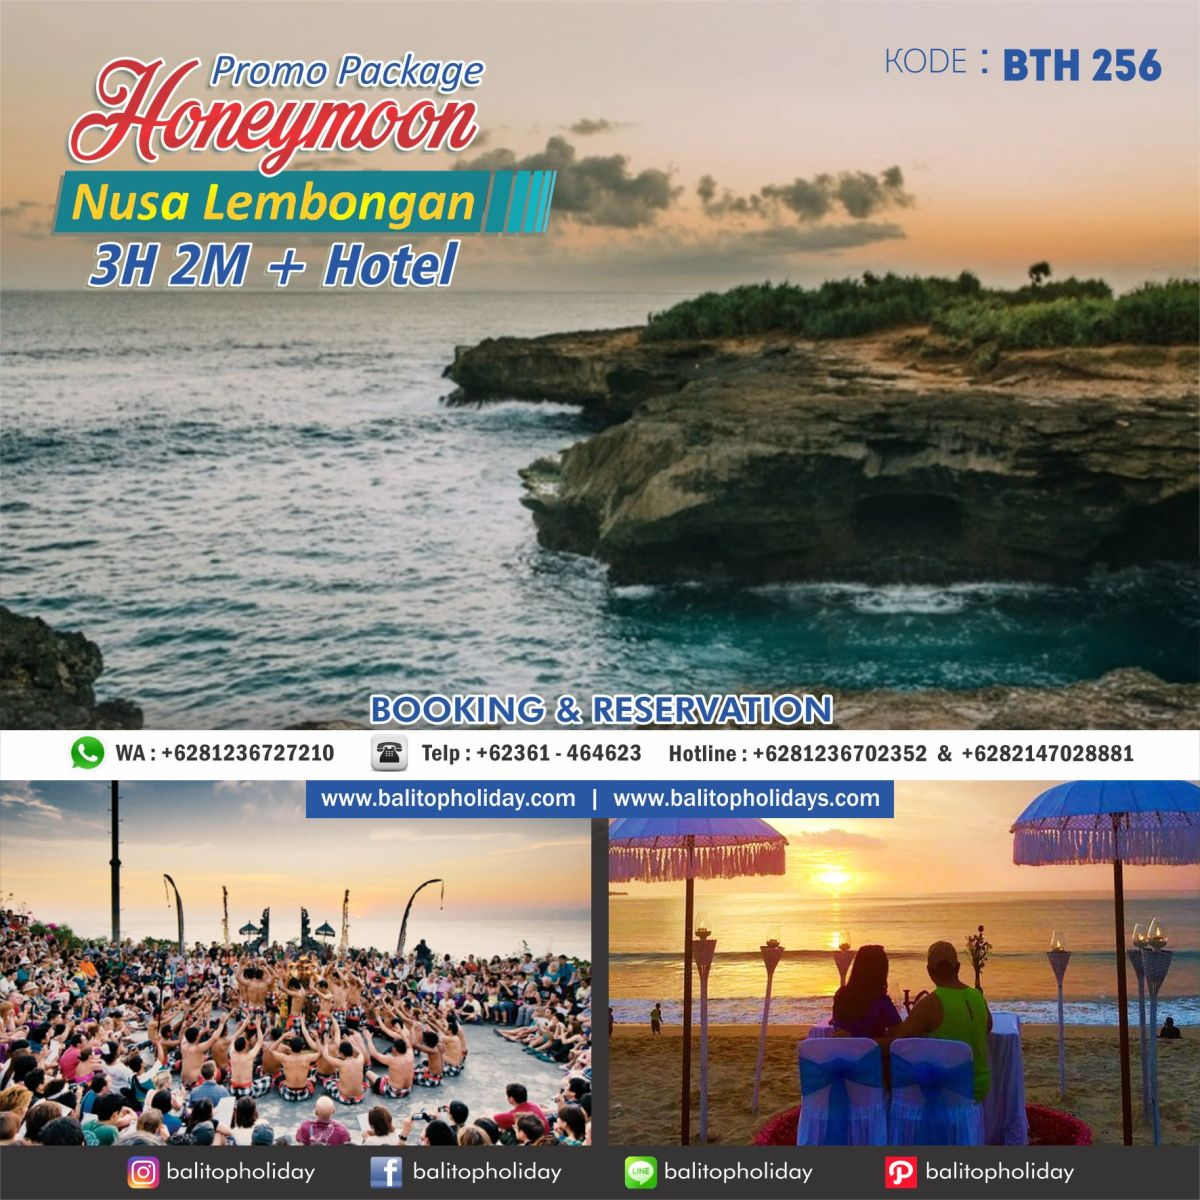 Paket Honeymoon 3H 2M + Lembongan